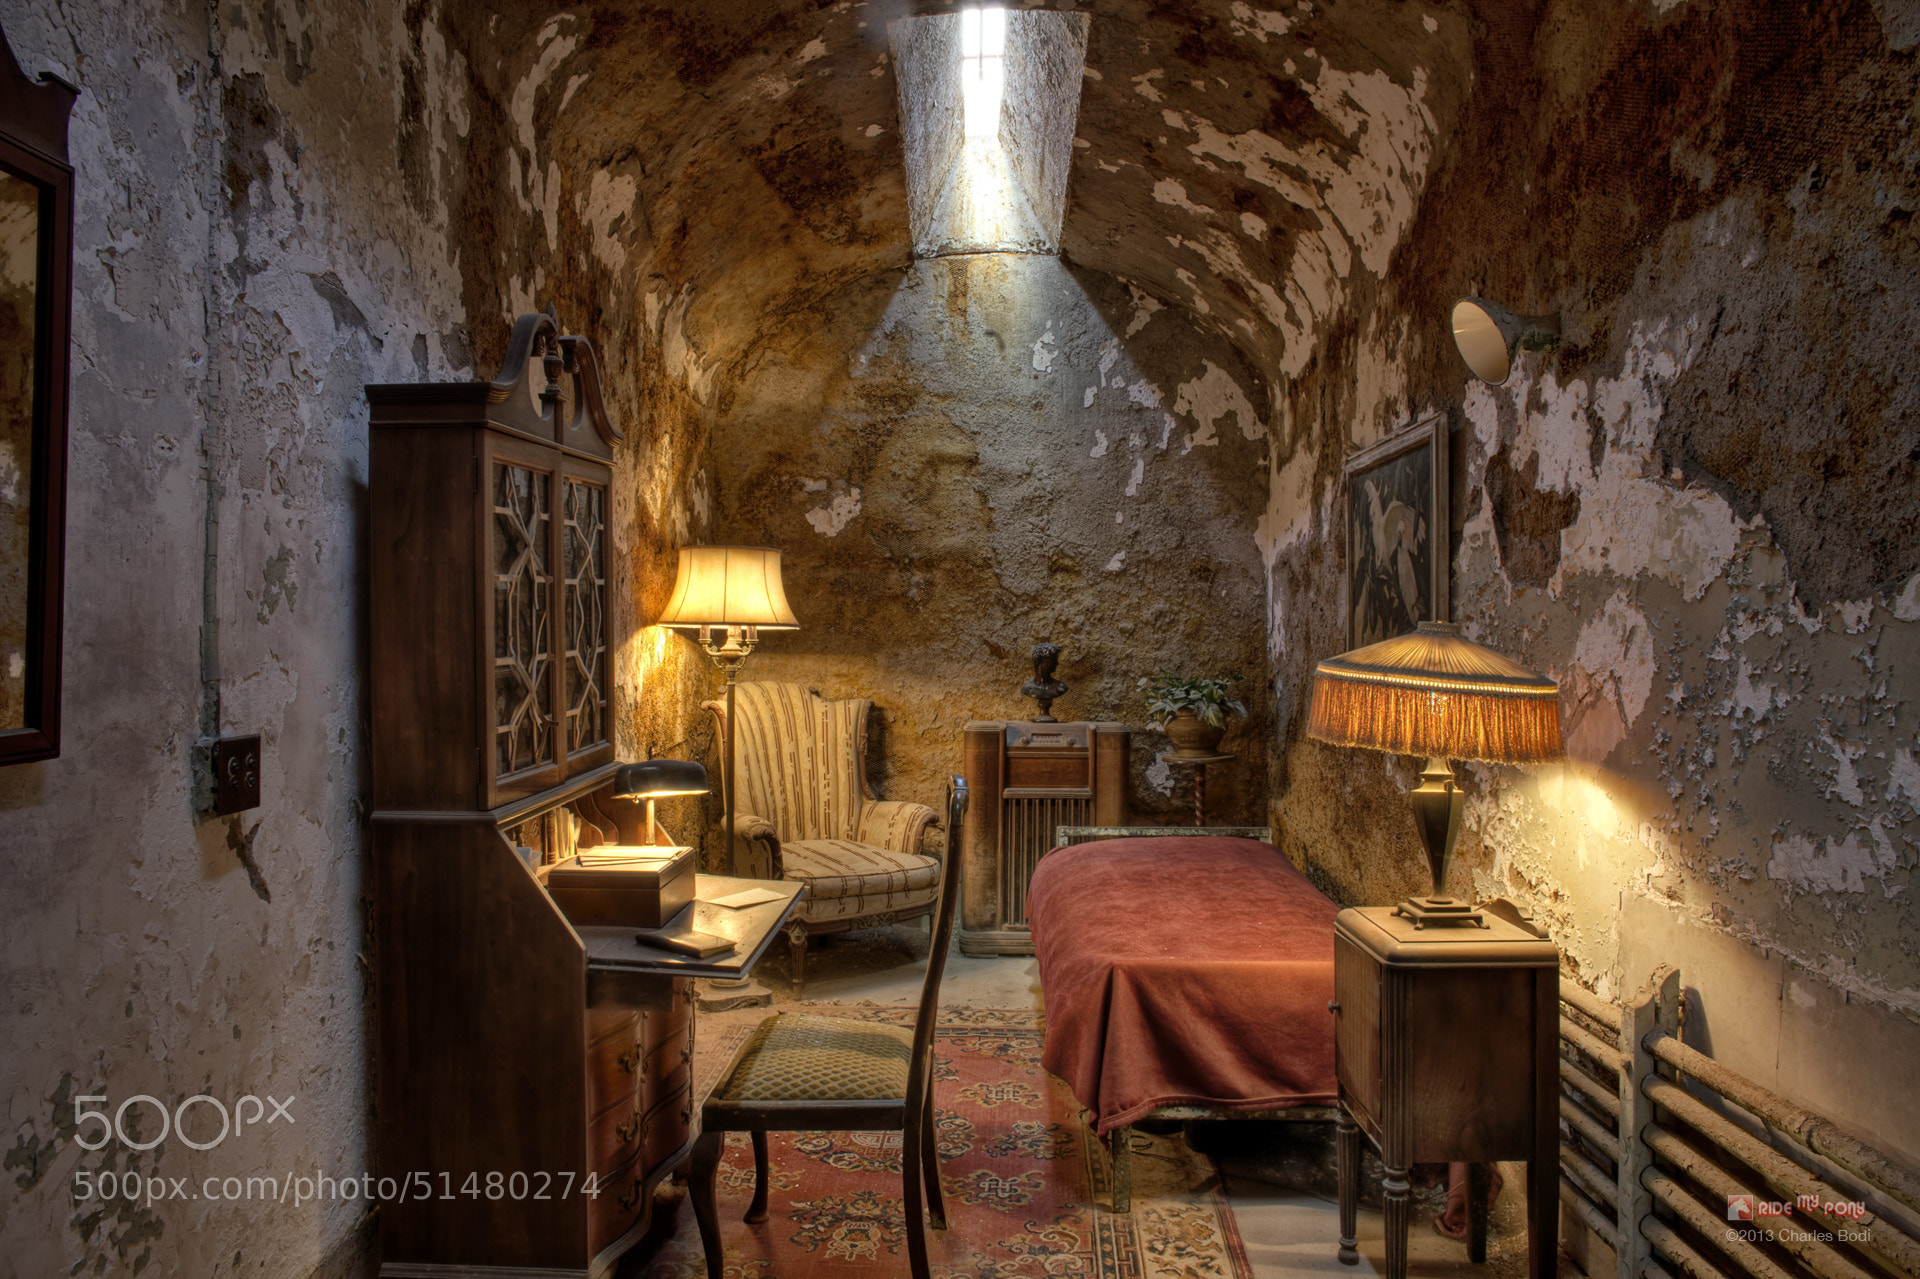 Photograph Al Capone Prison Cell by Charles Bodi on 500px